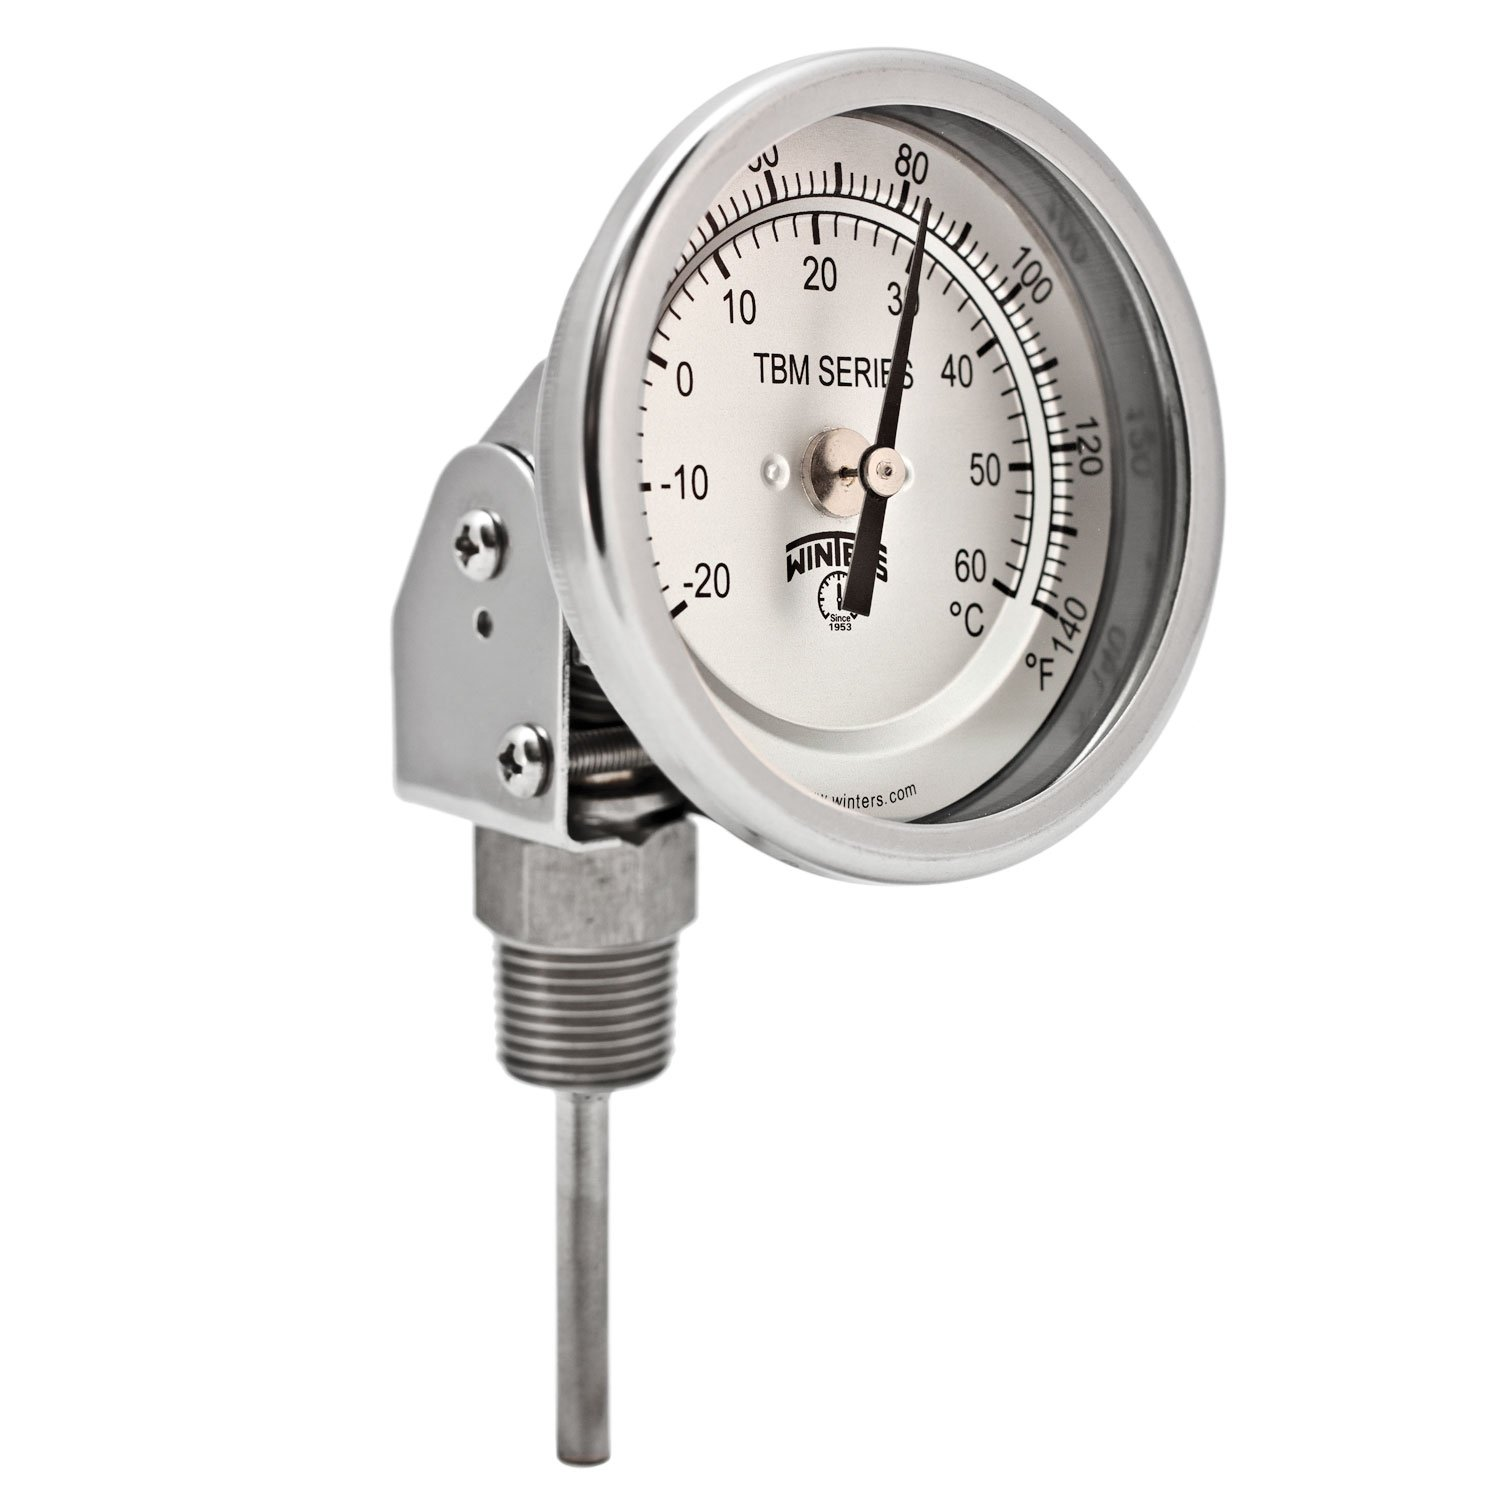 Winters TBM Series Stainless Steel 304 Dual Scale Bi-Metal Thermometer, 2-1/2'' Stem, 1/2'' NPT Adjustable Angle Connection, 3'' Dial, 0-140 F/C Range by Winters Instruments